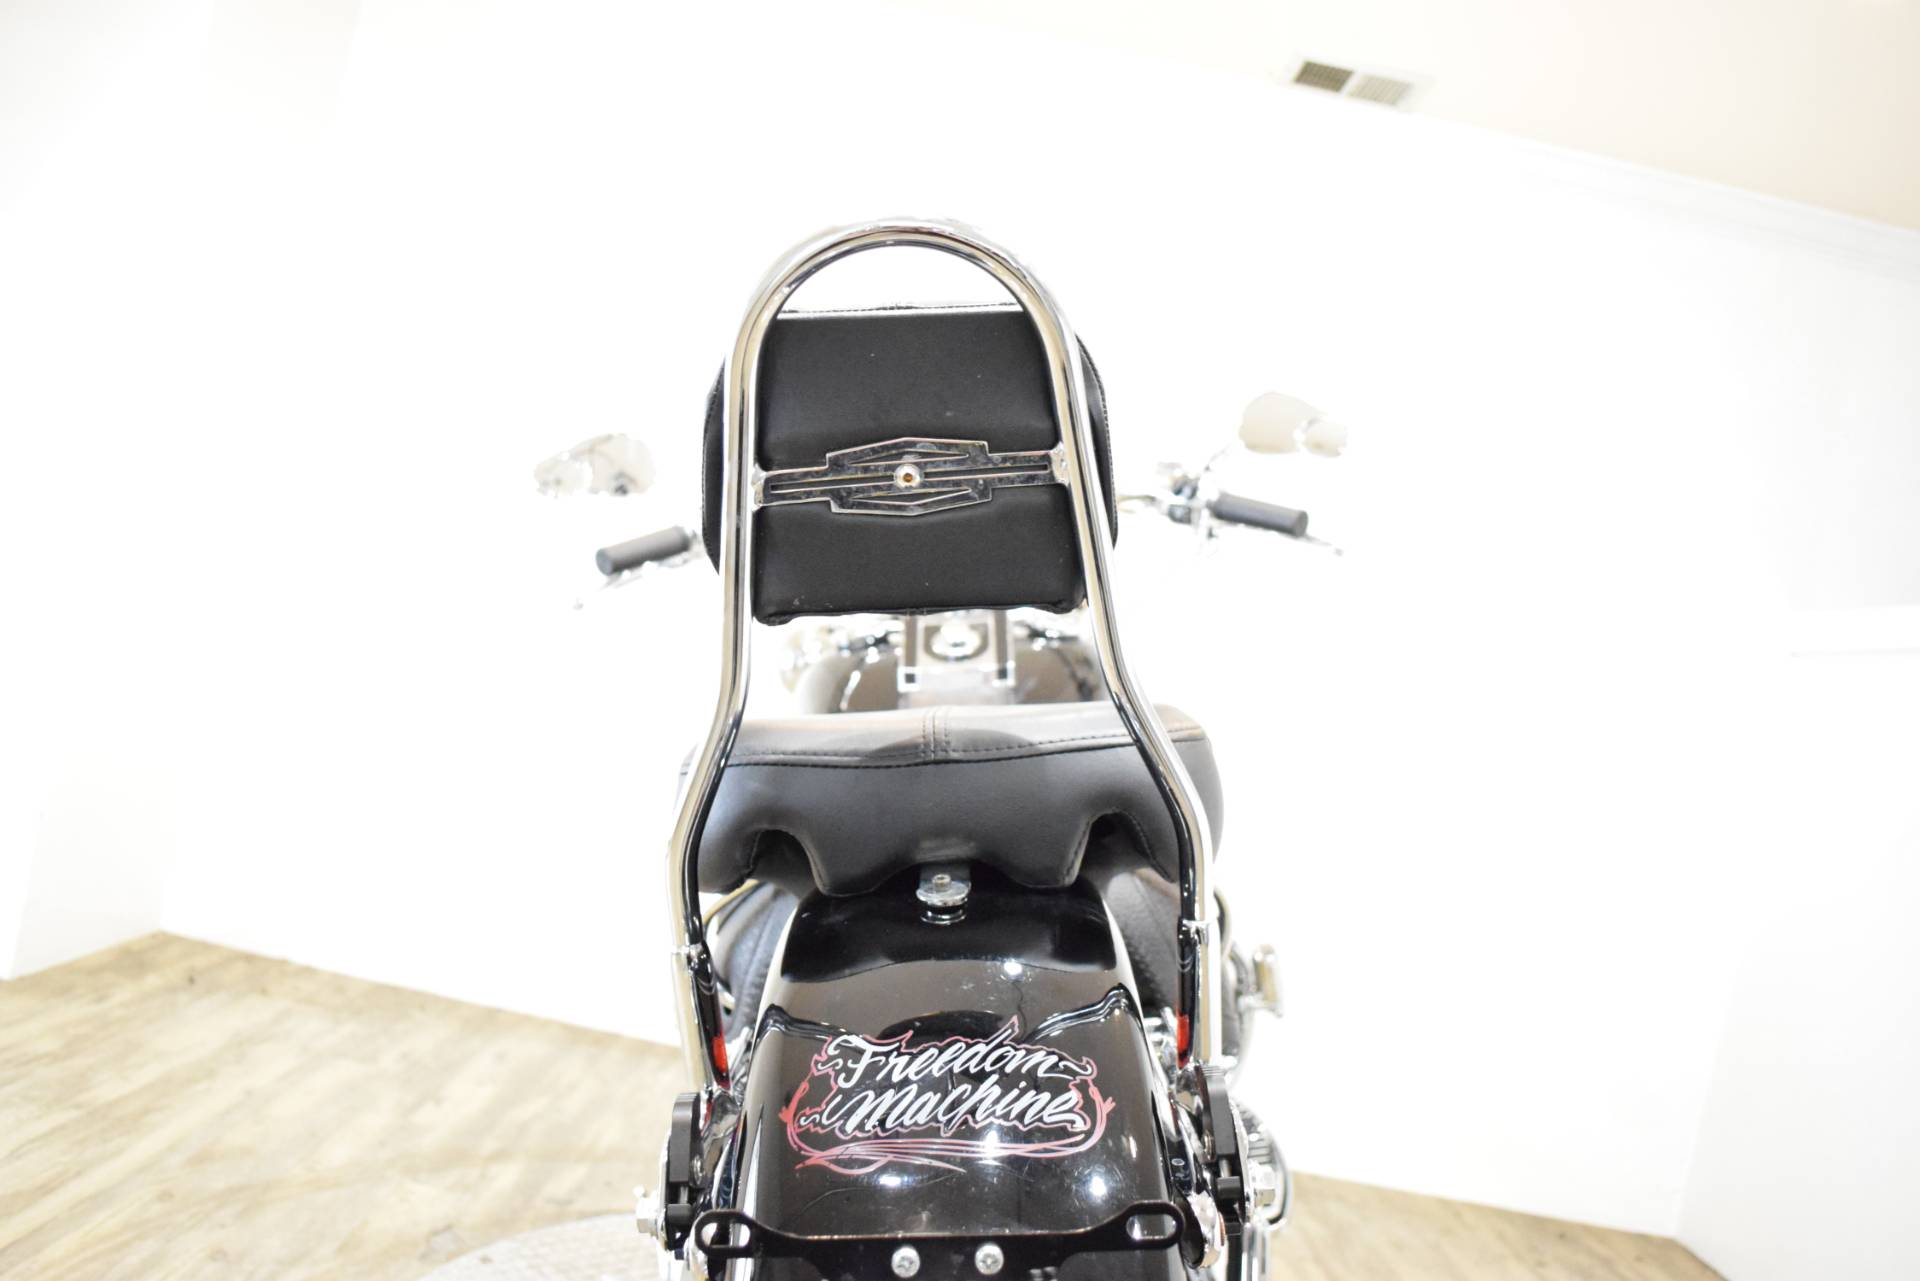 2007 Harley-Davidson Softail Deluxe in Wauconda, Illinois - Photo 27